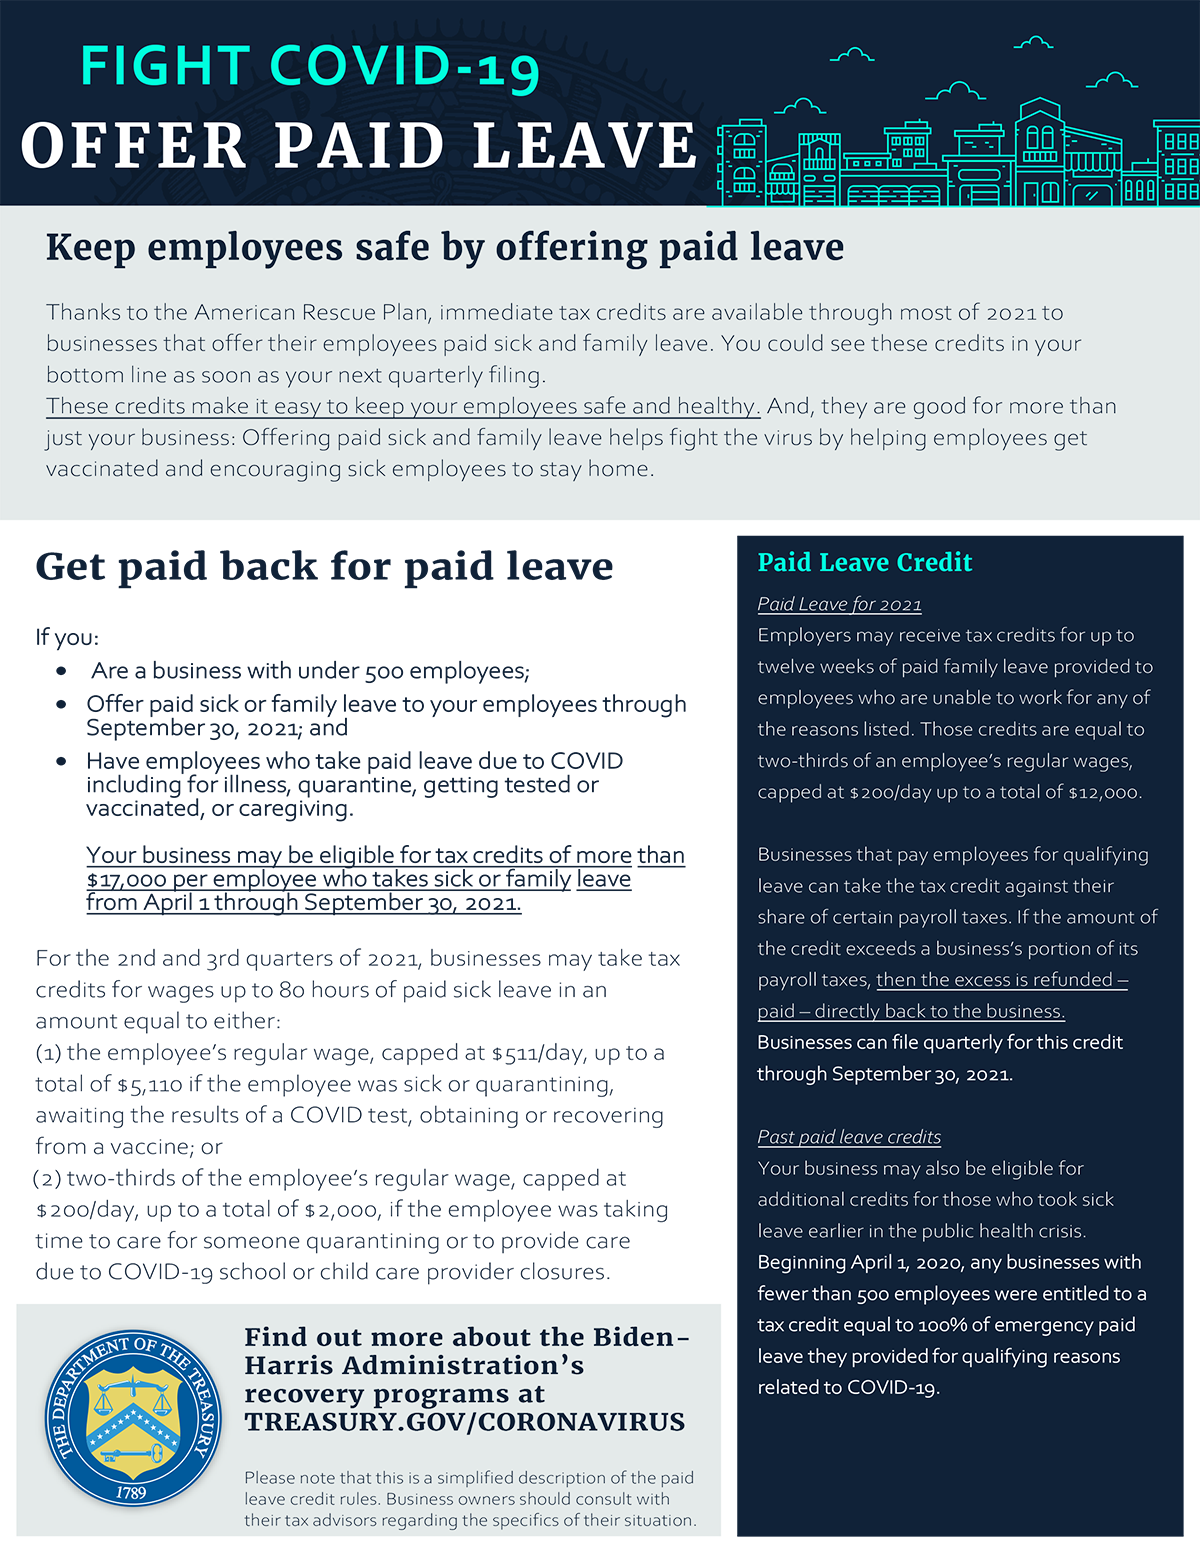 Paid Leave Credit Snapshot